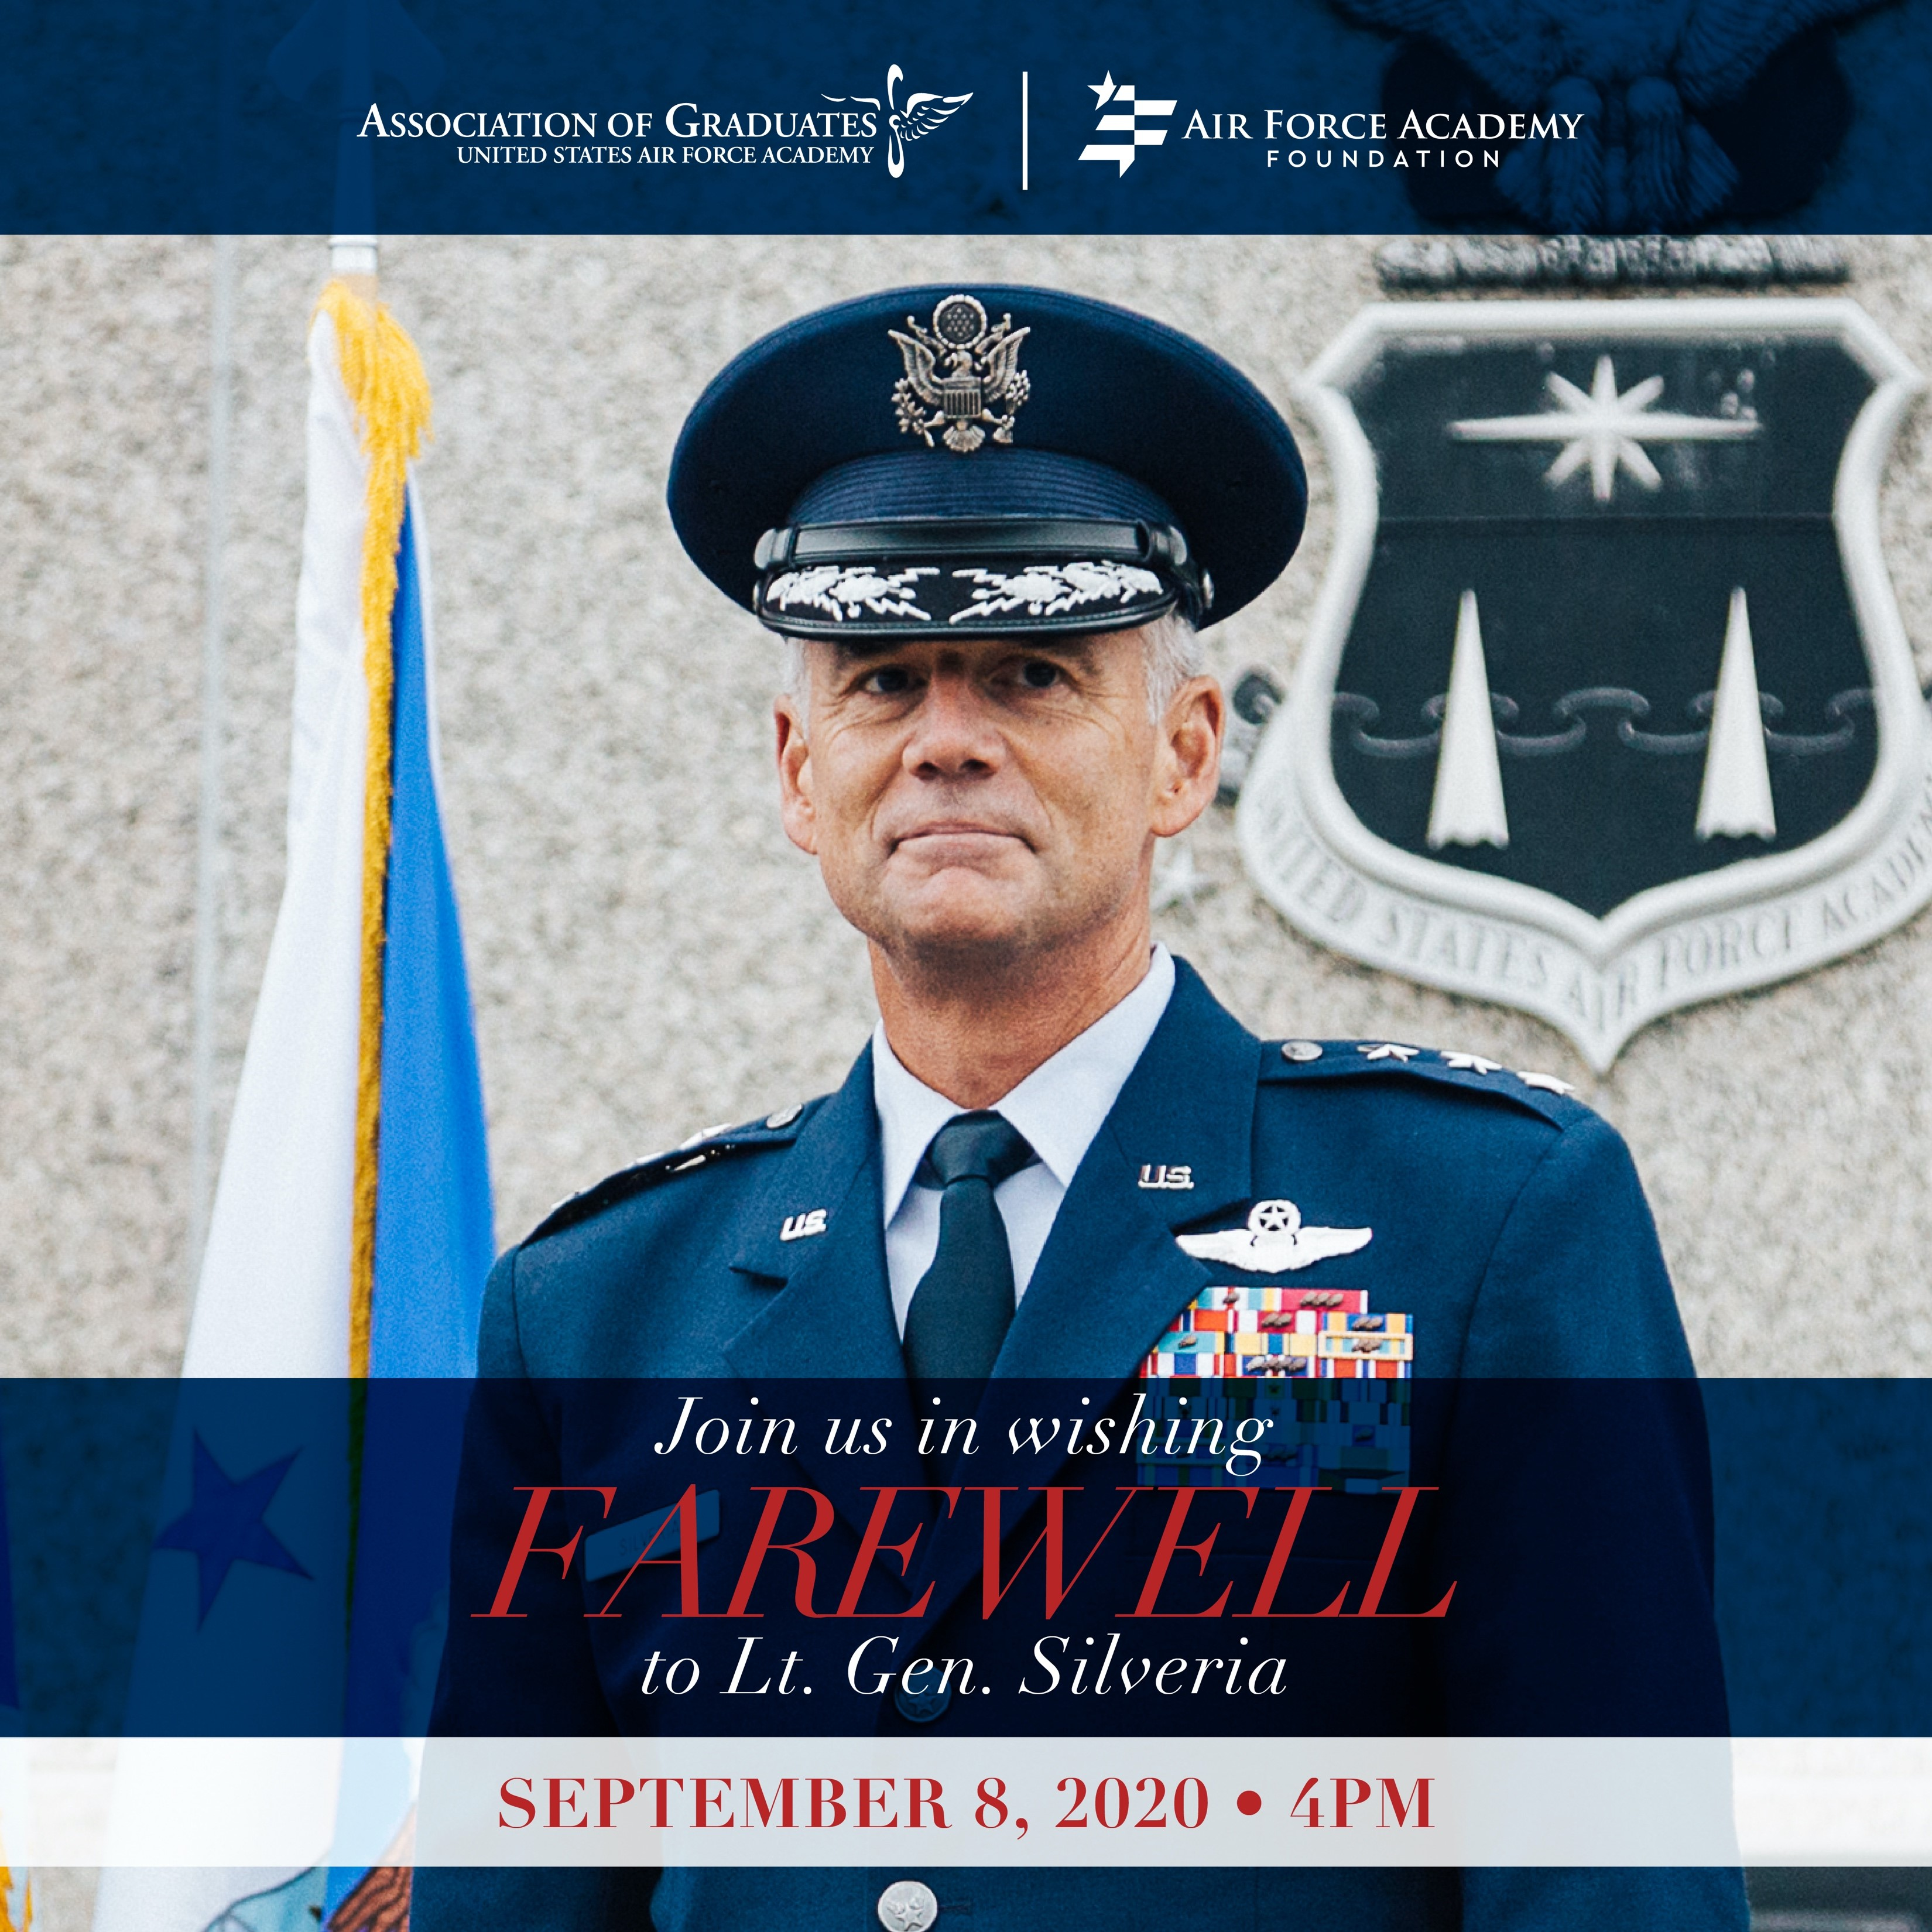 Image for Farewell Call with Lt. Gen. Silveria webinar